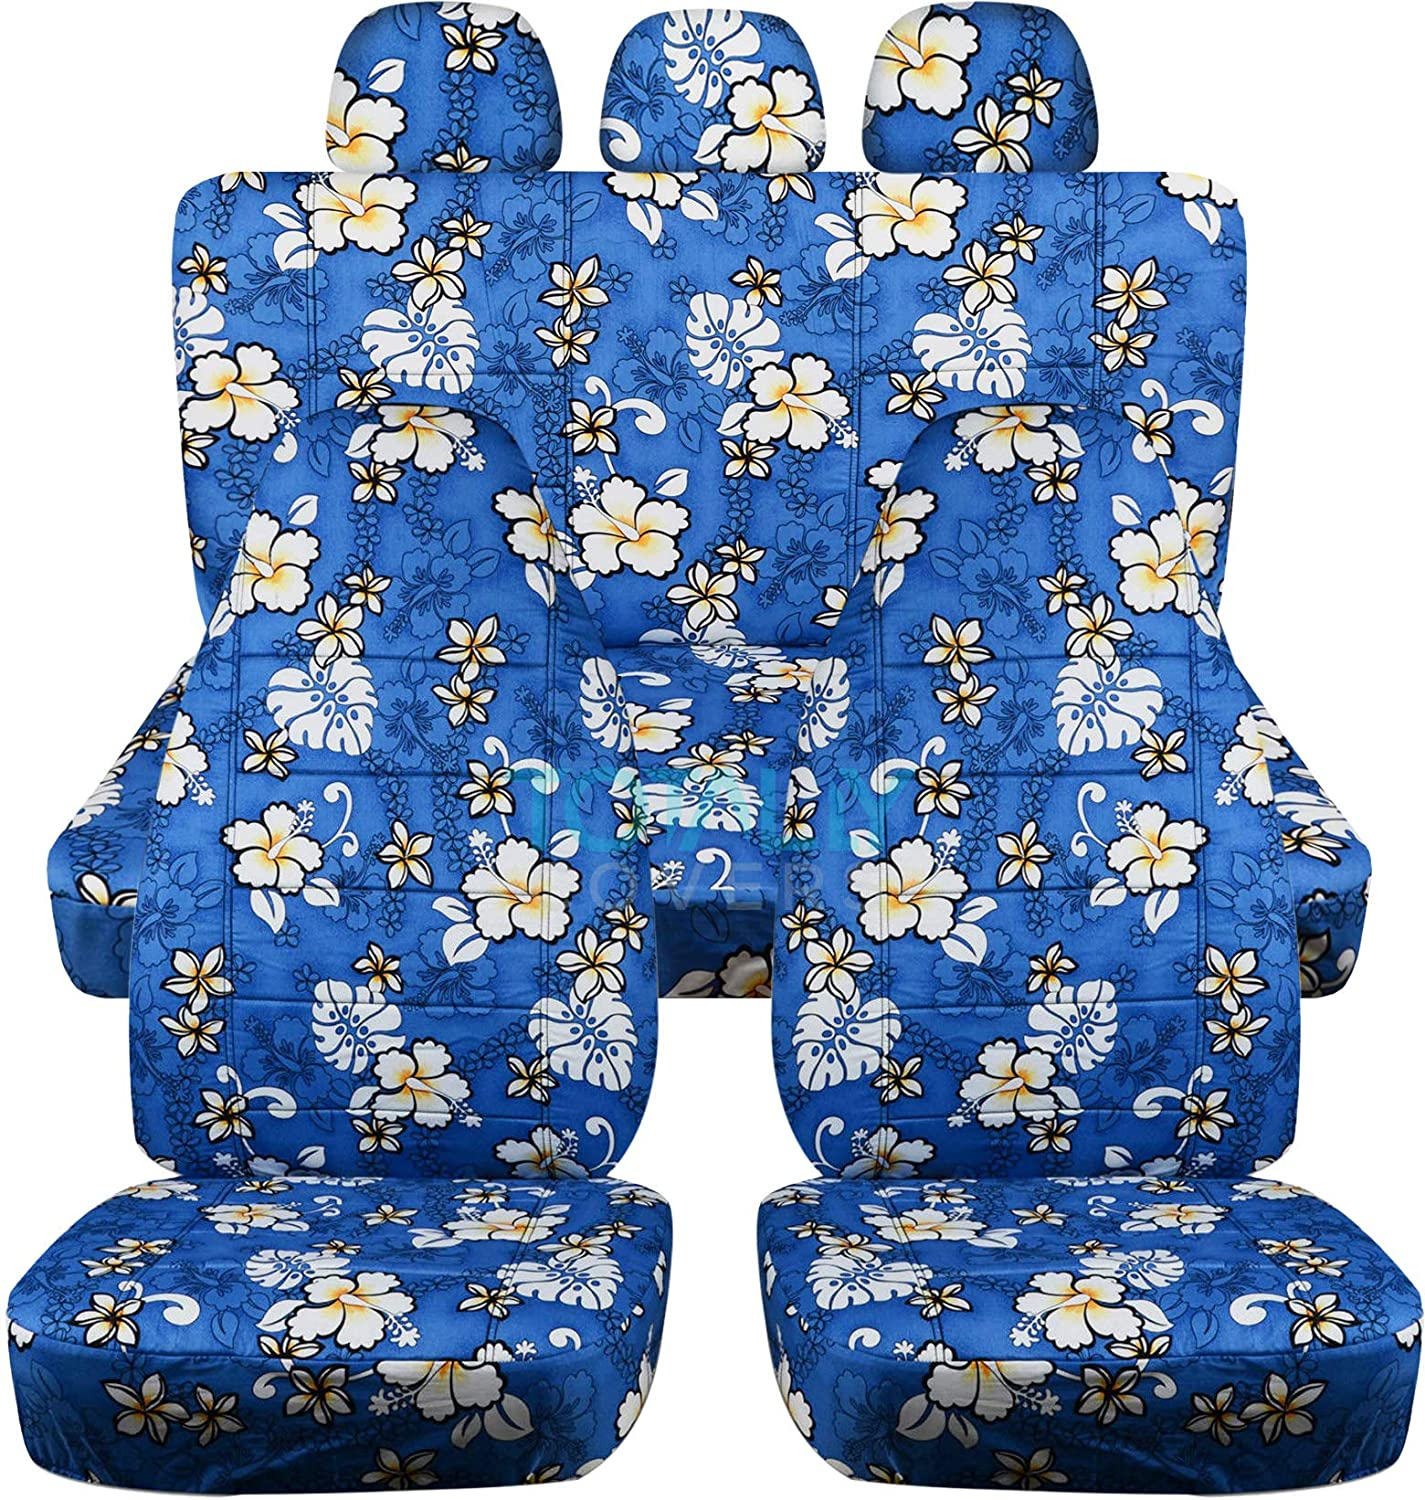 Totally Covers Hawaiian Print Car Seat Covers w 3 Rear Headrest: Blue w Flowers Universal Fit Full Set Front Buckets & Rear Bench Option for Airbag/Seat Belt/Armrest/Release/Lever/Split Compatible